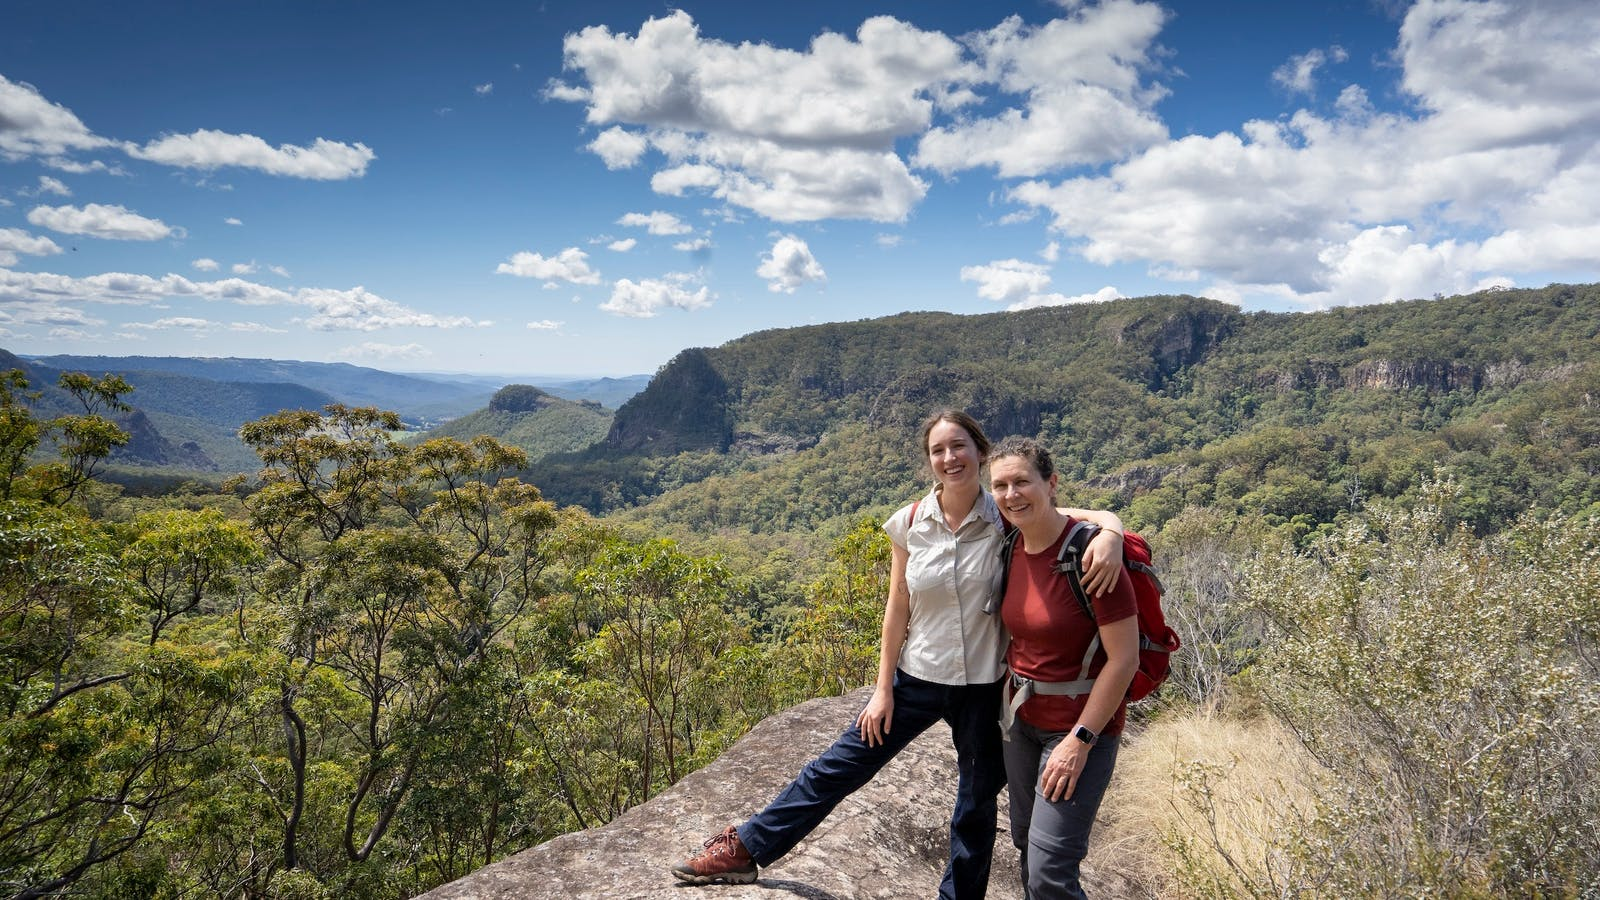 Lisa and Inari, two guides for Binna Burra activities